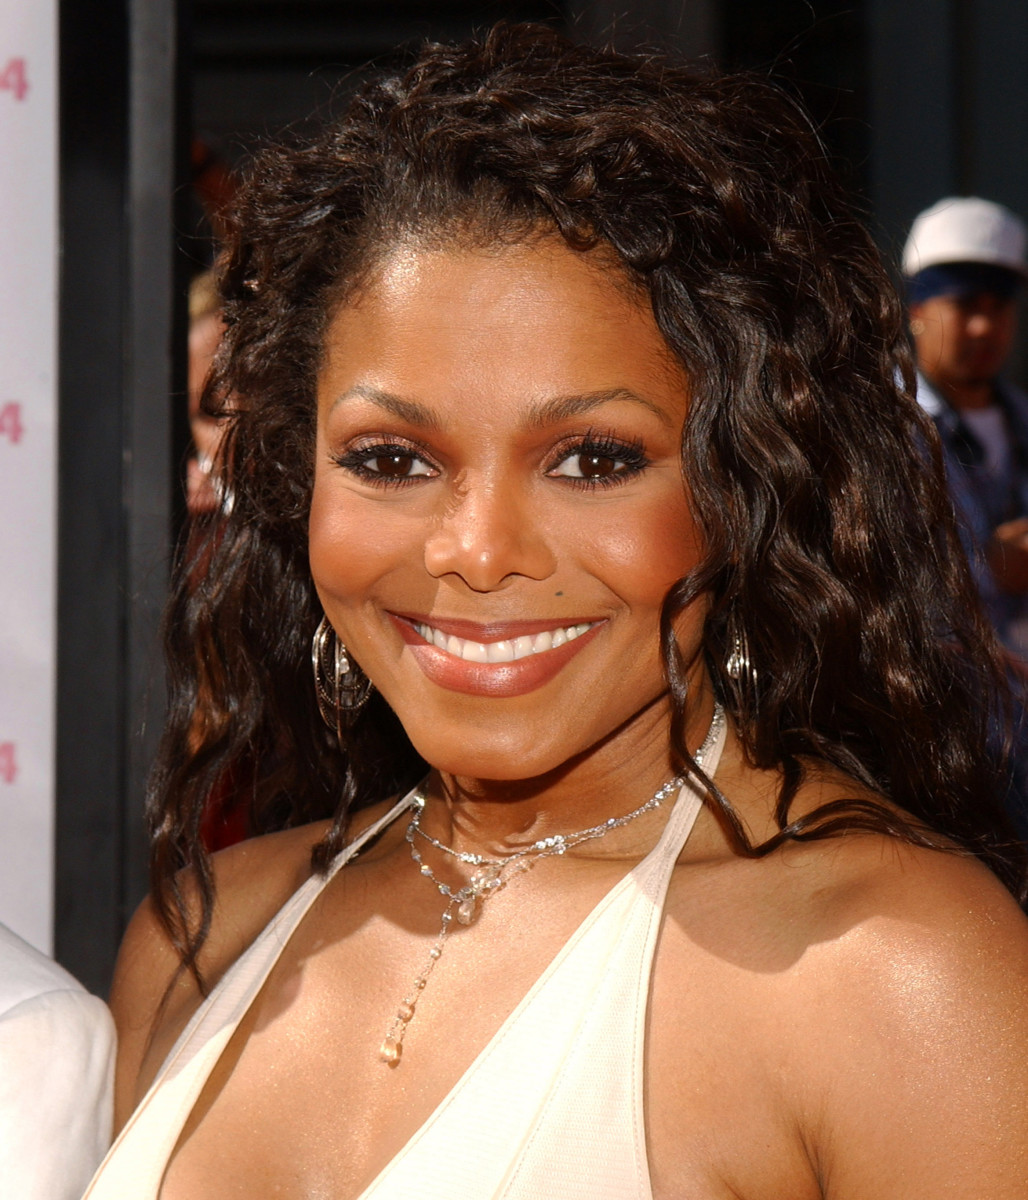 Janet Jackson at the BET Awards in 2004. (Photo: Jean-Paul Aussenard/WireImage for BET Network)